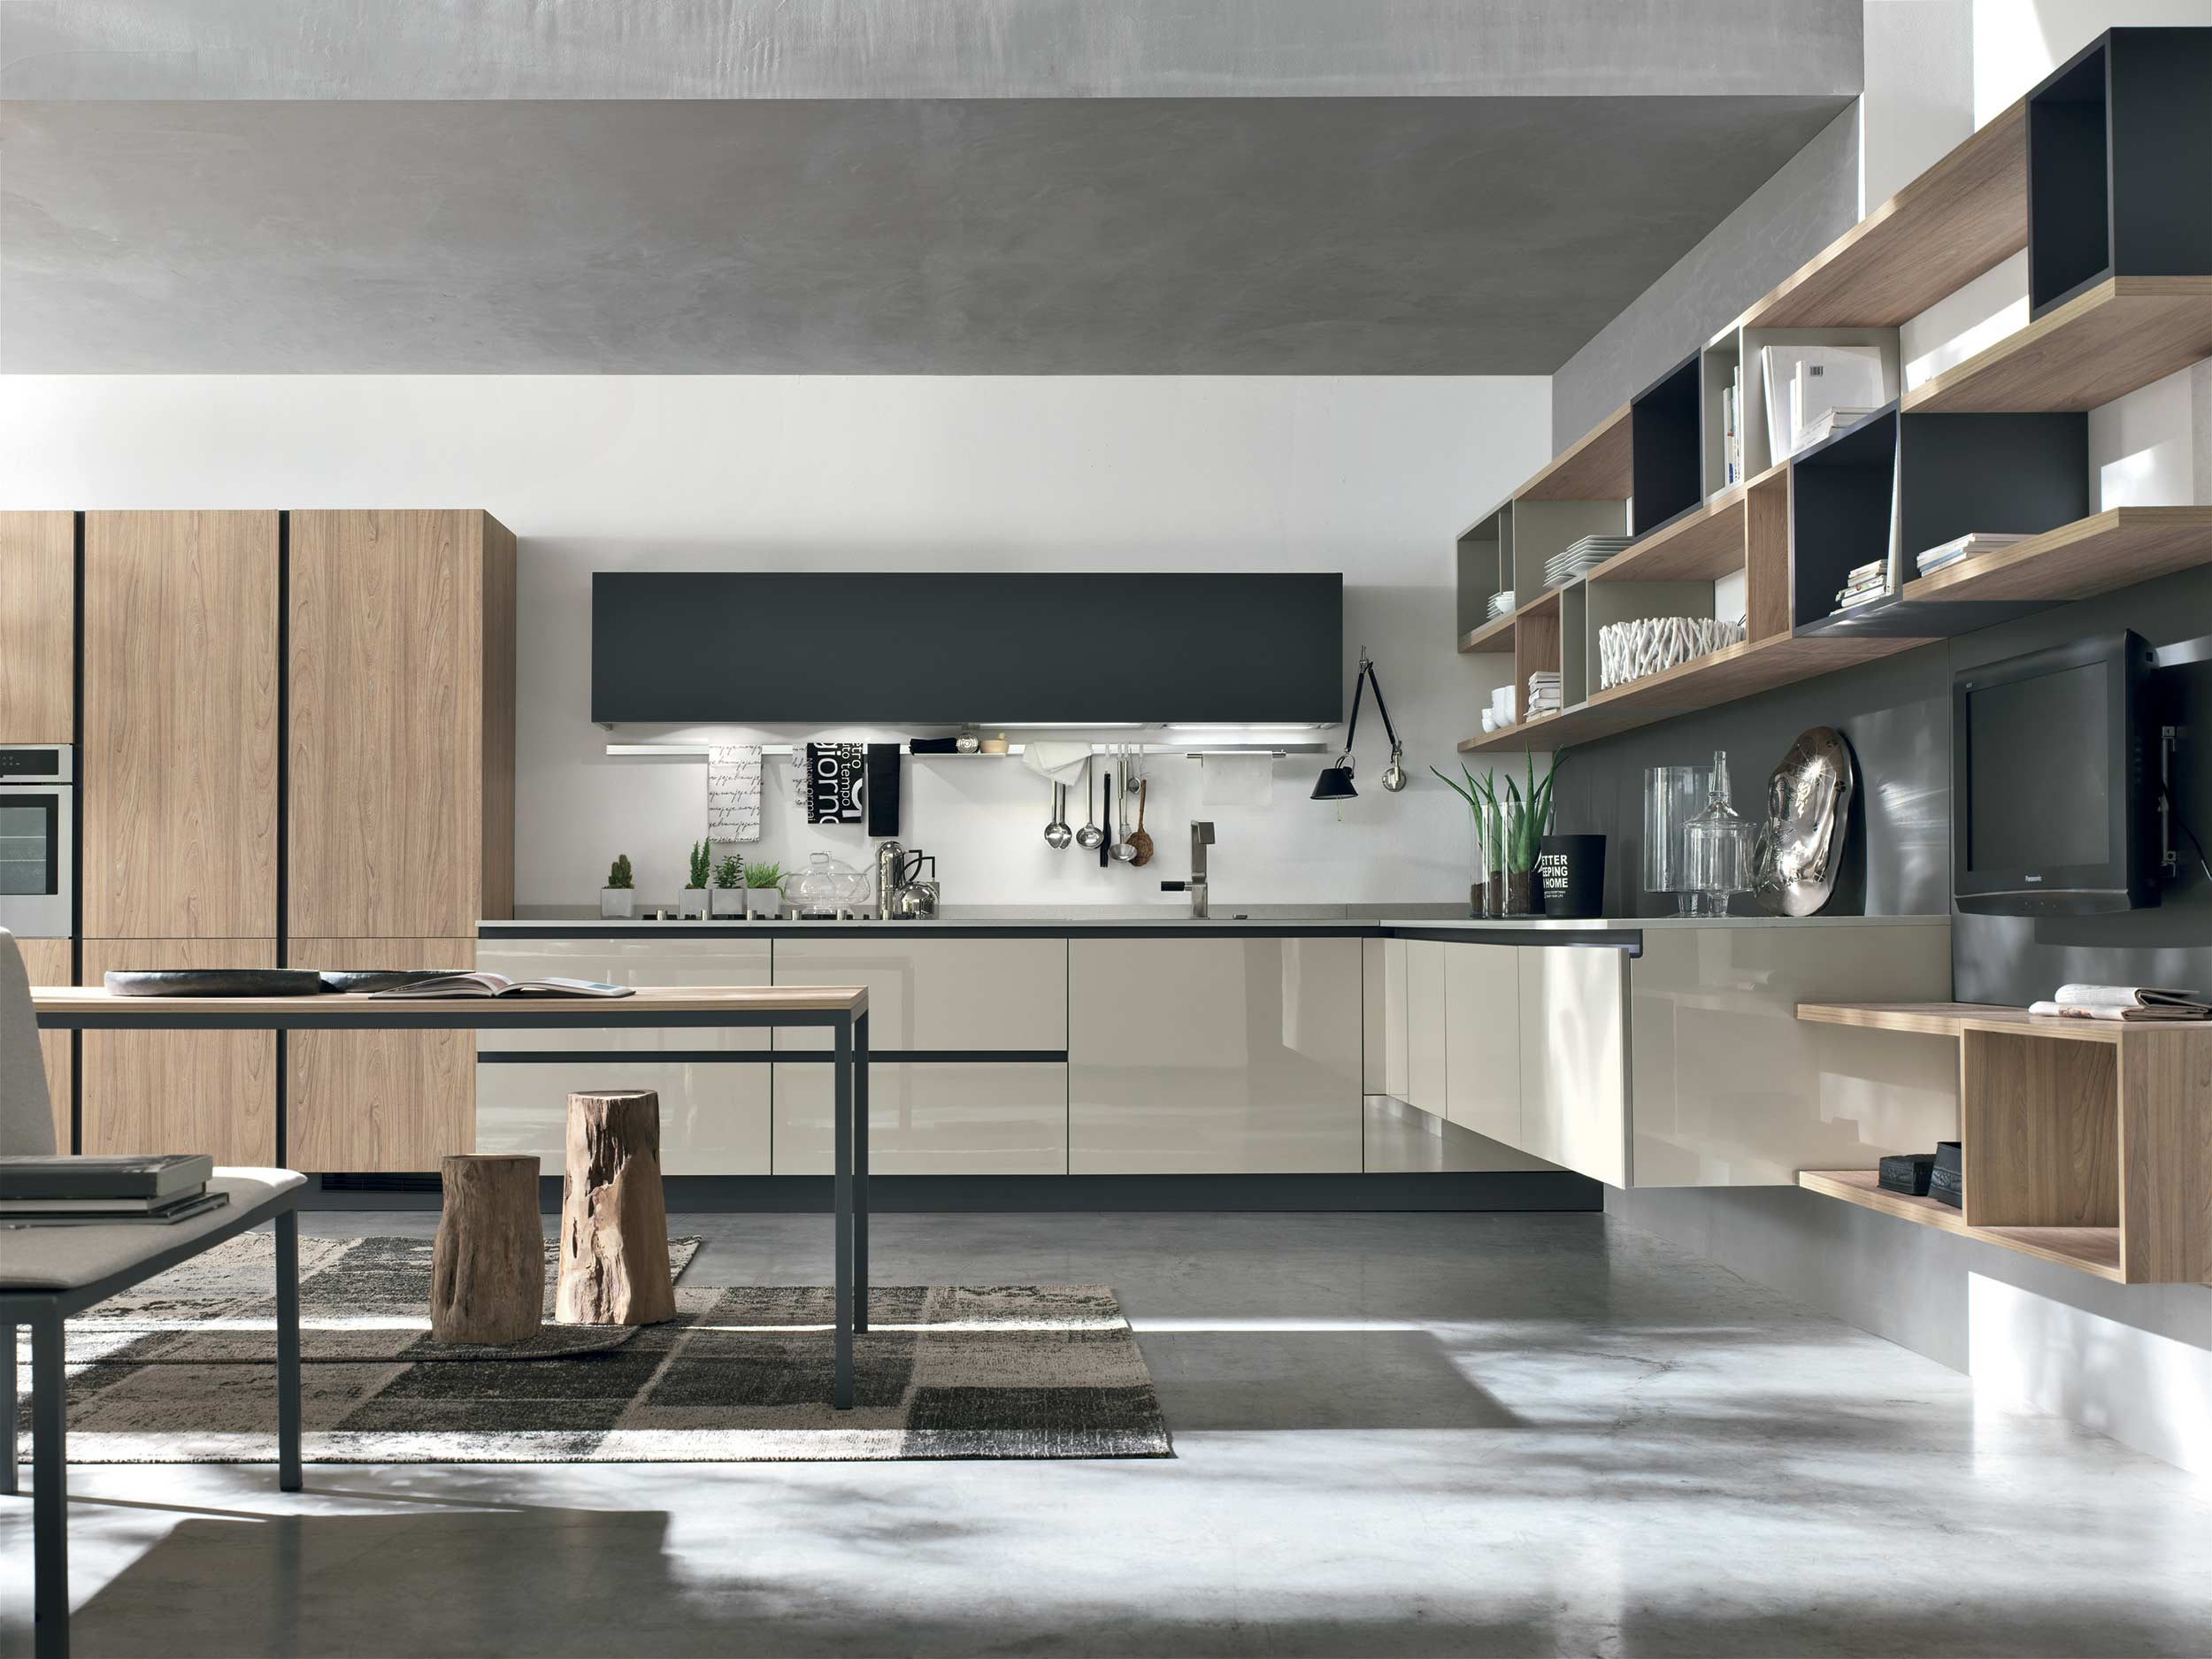 Cucine Belle Moderne. Latest With Cucine Piu Belle Moderne With ...